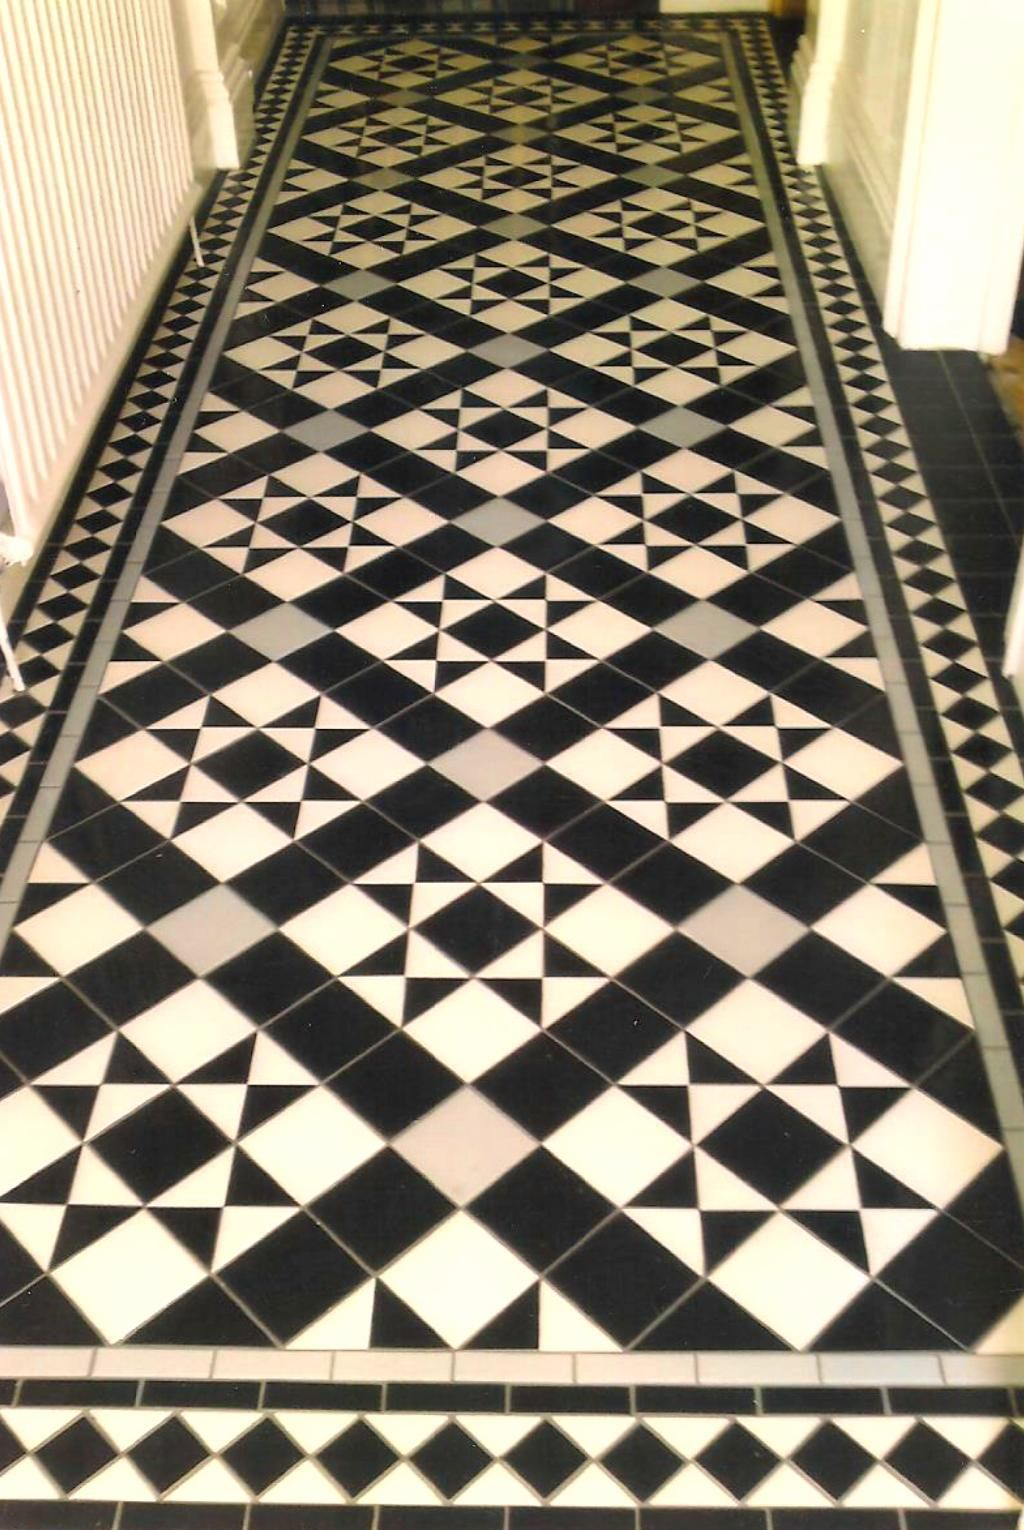 Victorian tiling victorian tiles floors paths expertly fitted in victorian tiling victorian tiles floors paths expertly fitted in surrey dailygadgetfo Image collections